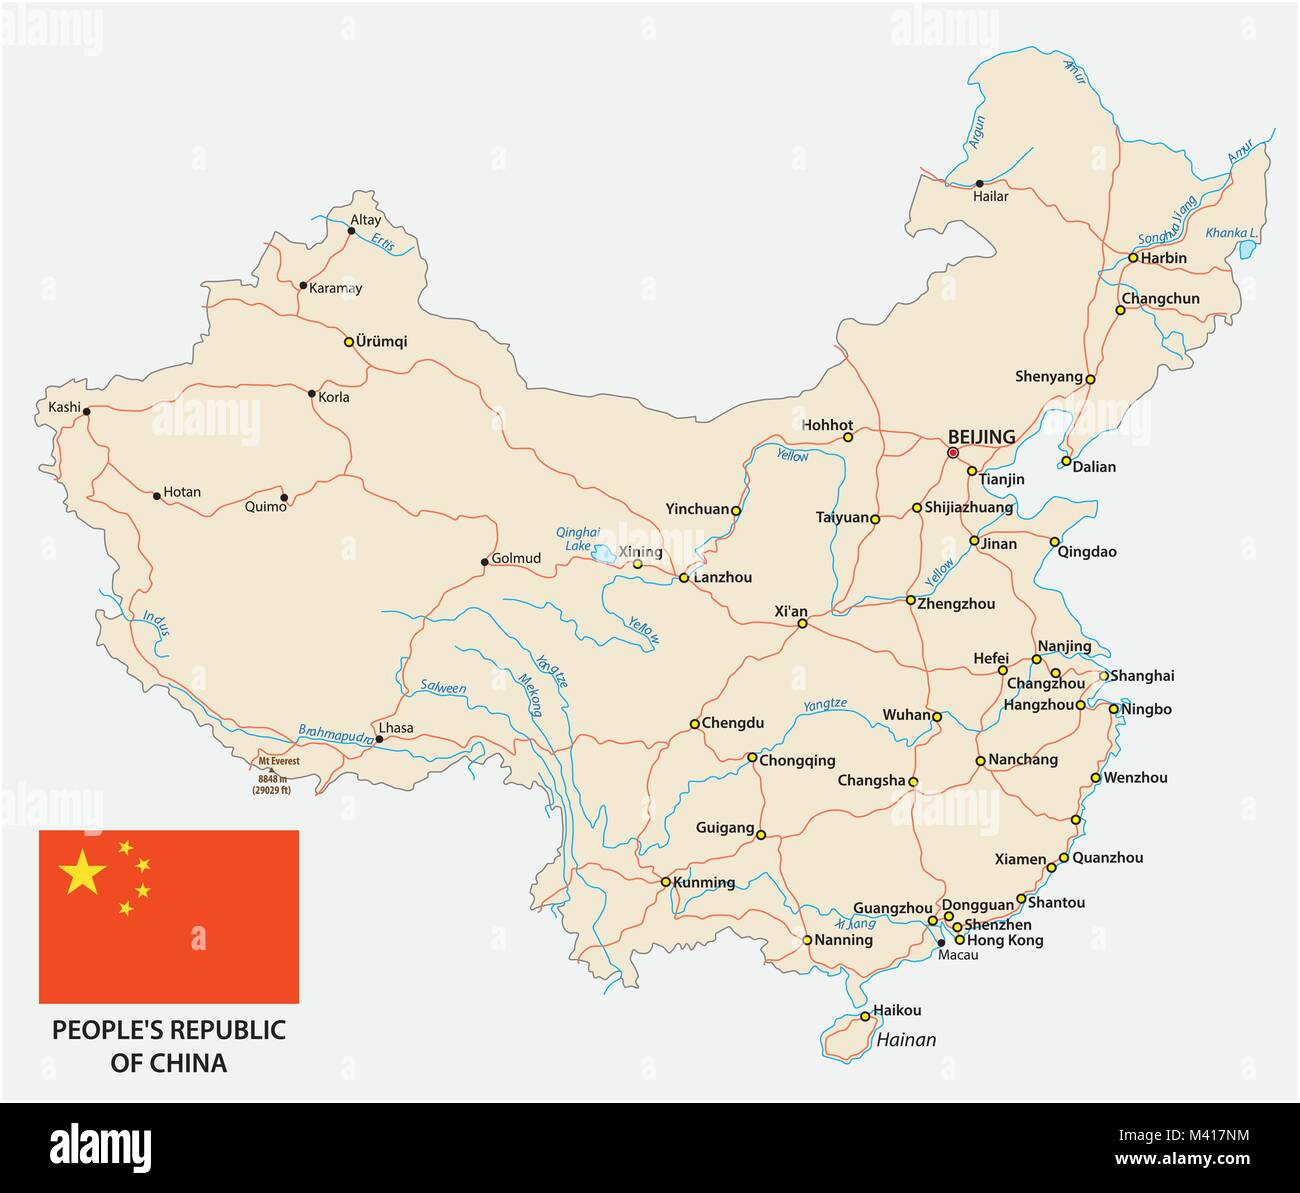 People's Republic of China road vector map with flag - Stock Vector